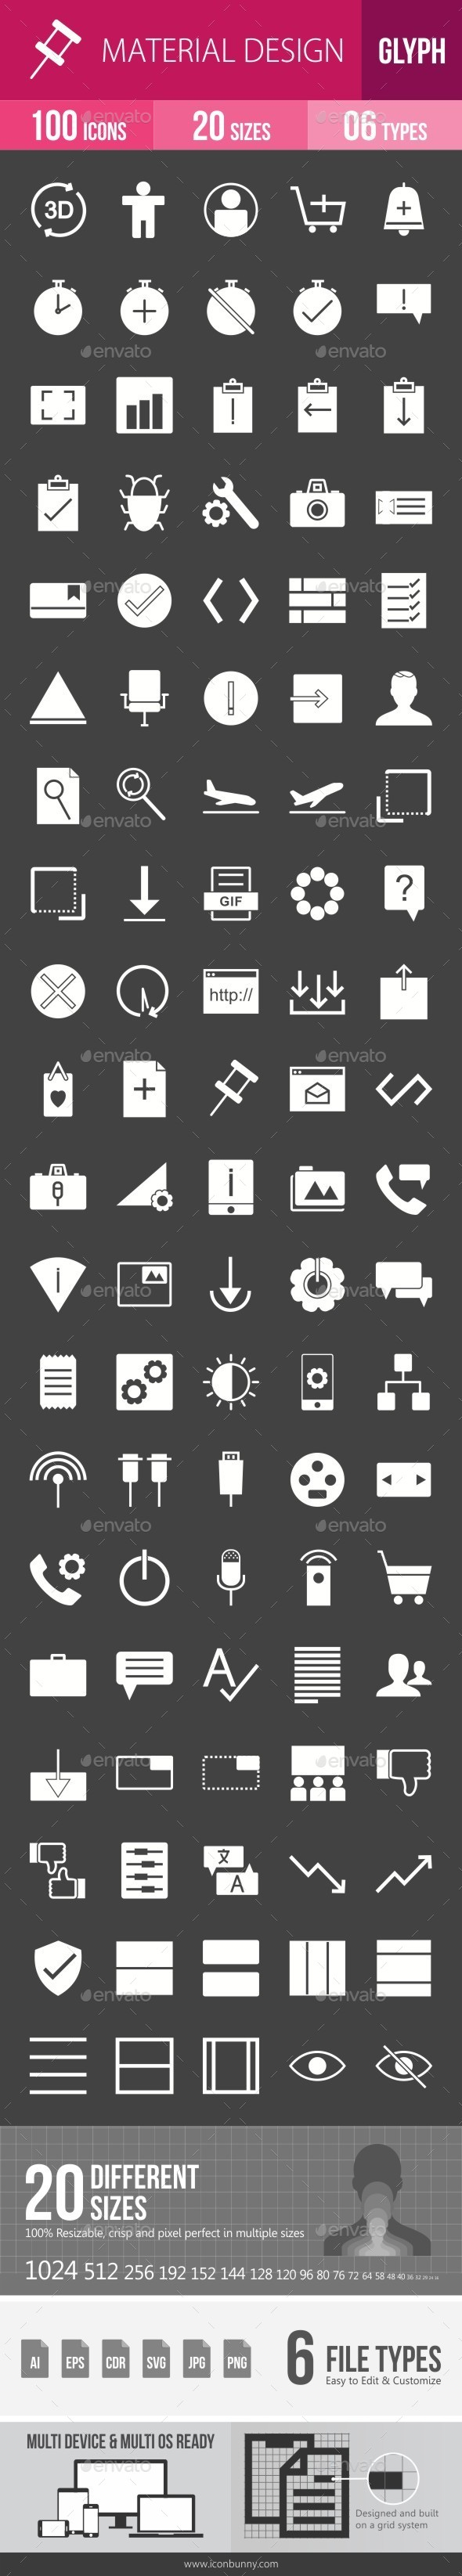 Material Design Glyph Inverted Icons - Icons